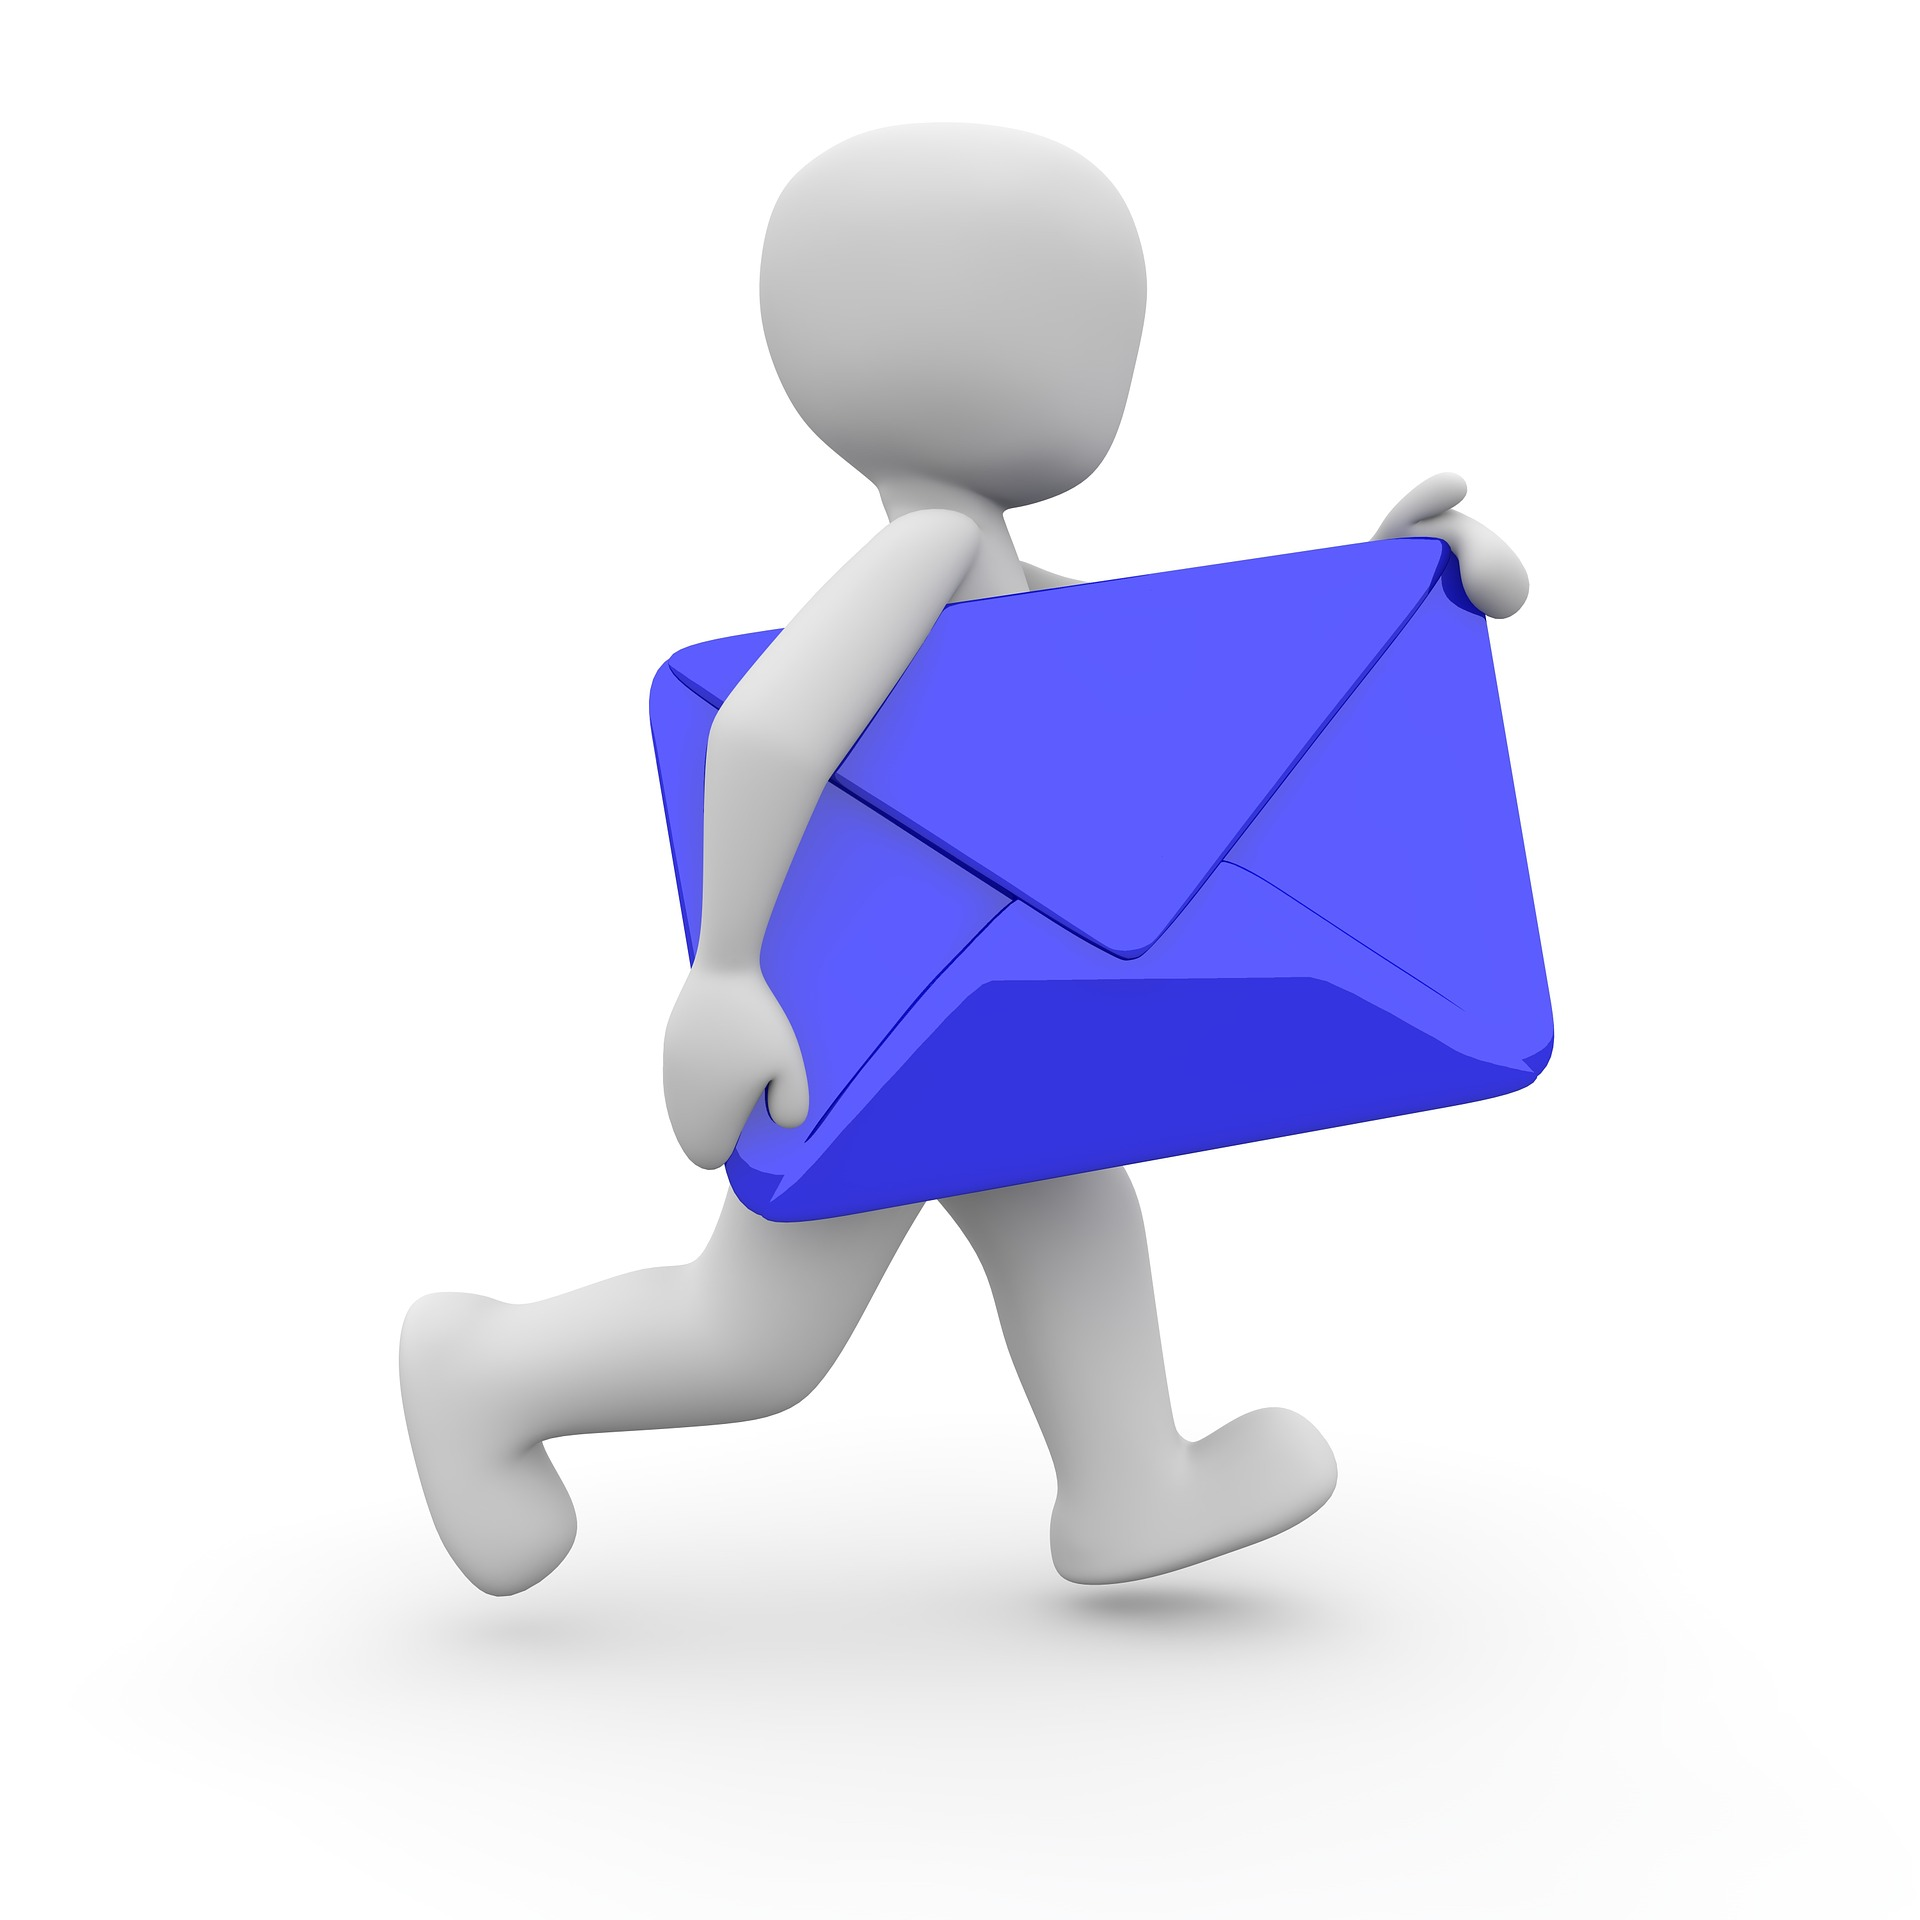 Email marketing is far from dead, in fact it's seeing a resurgence in popularity in 2020.